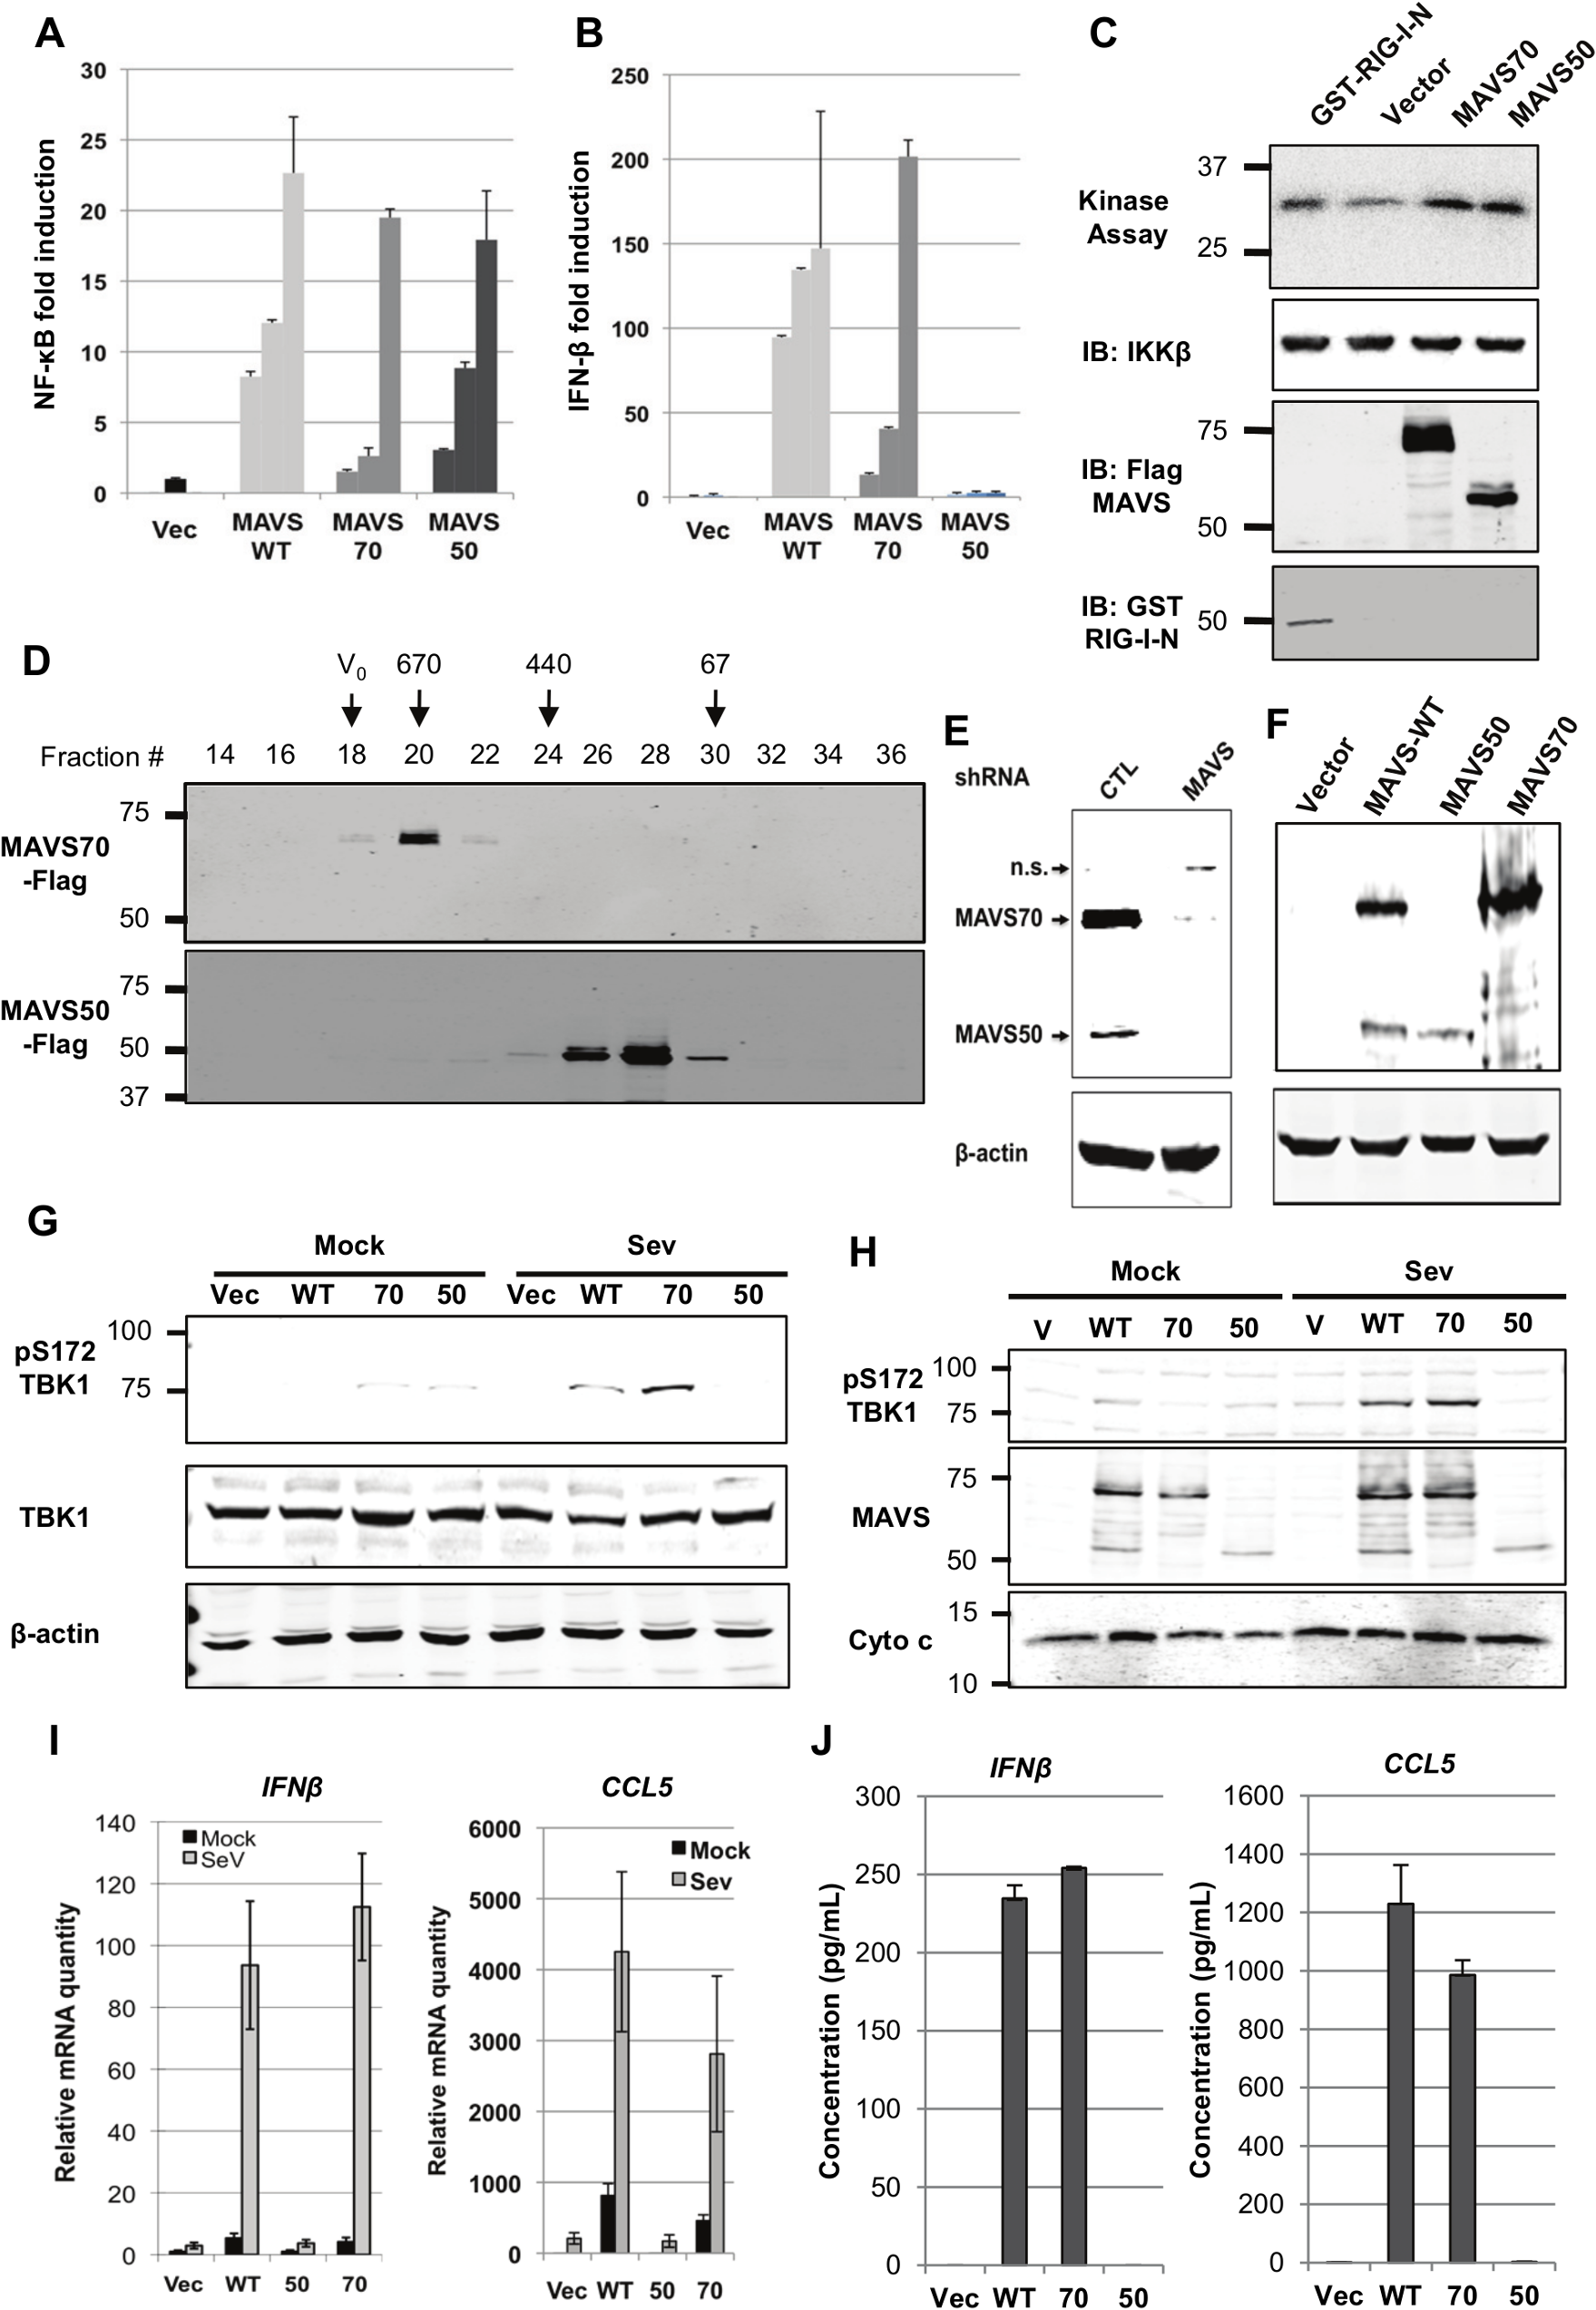 Characterize the roles of MAVS50 in RIG-I-dependent signaling.